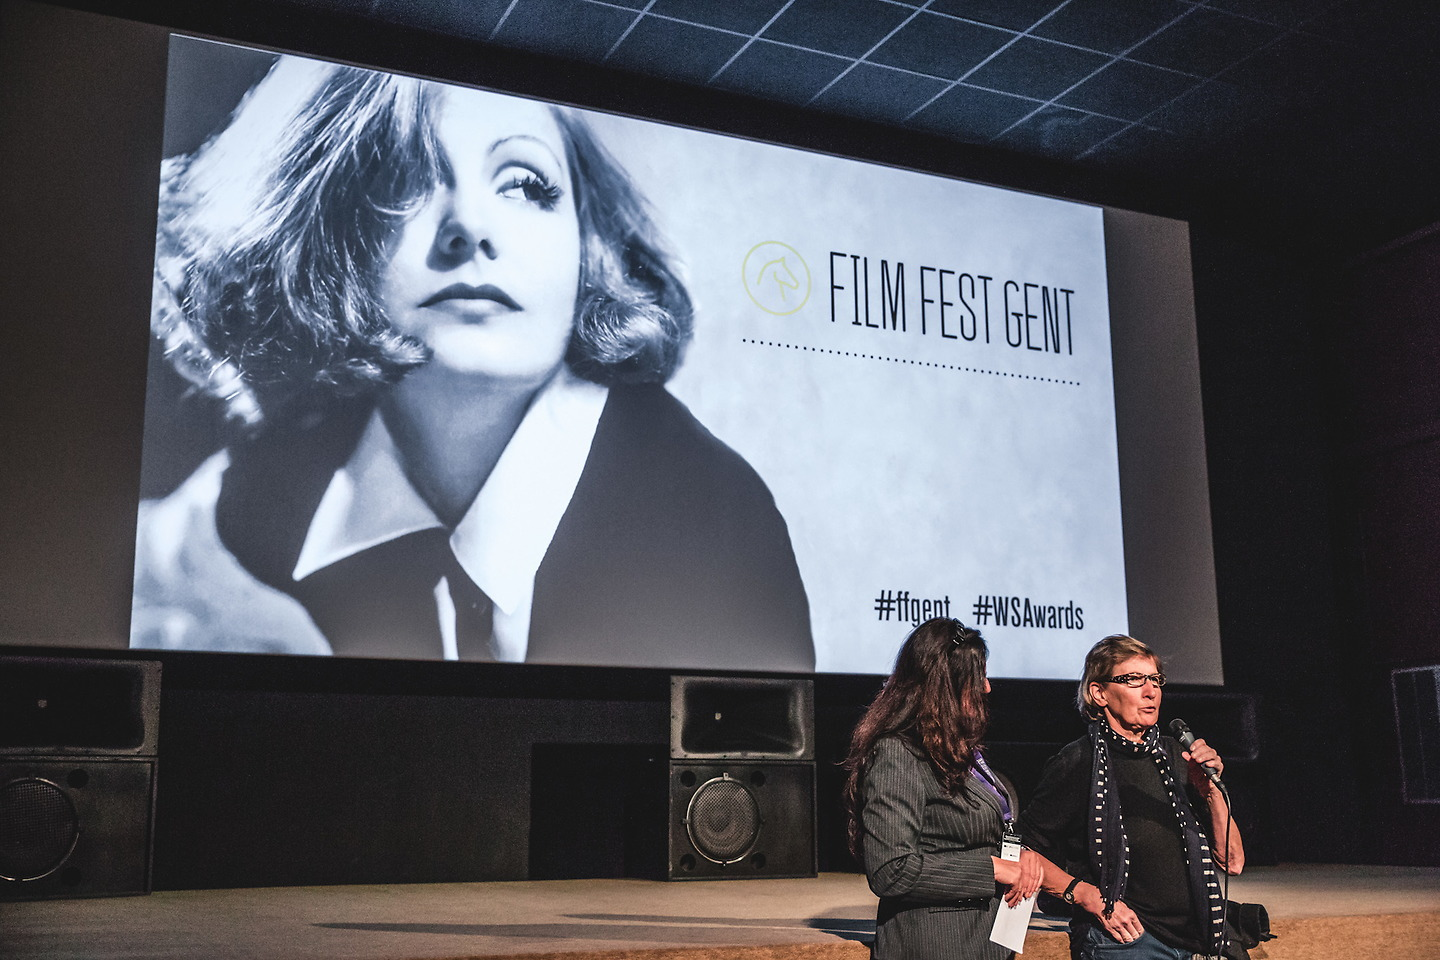 Film Fest Gent - Concrete Night